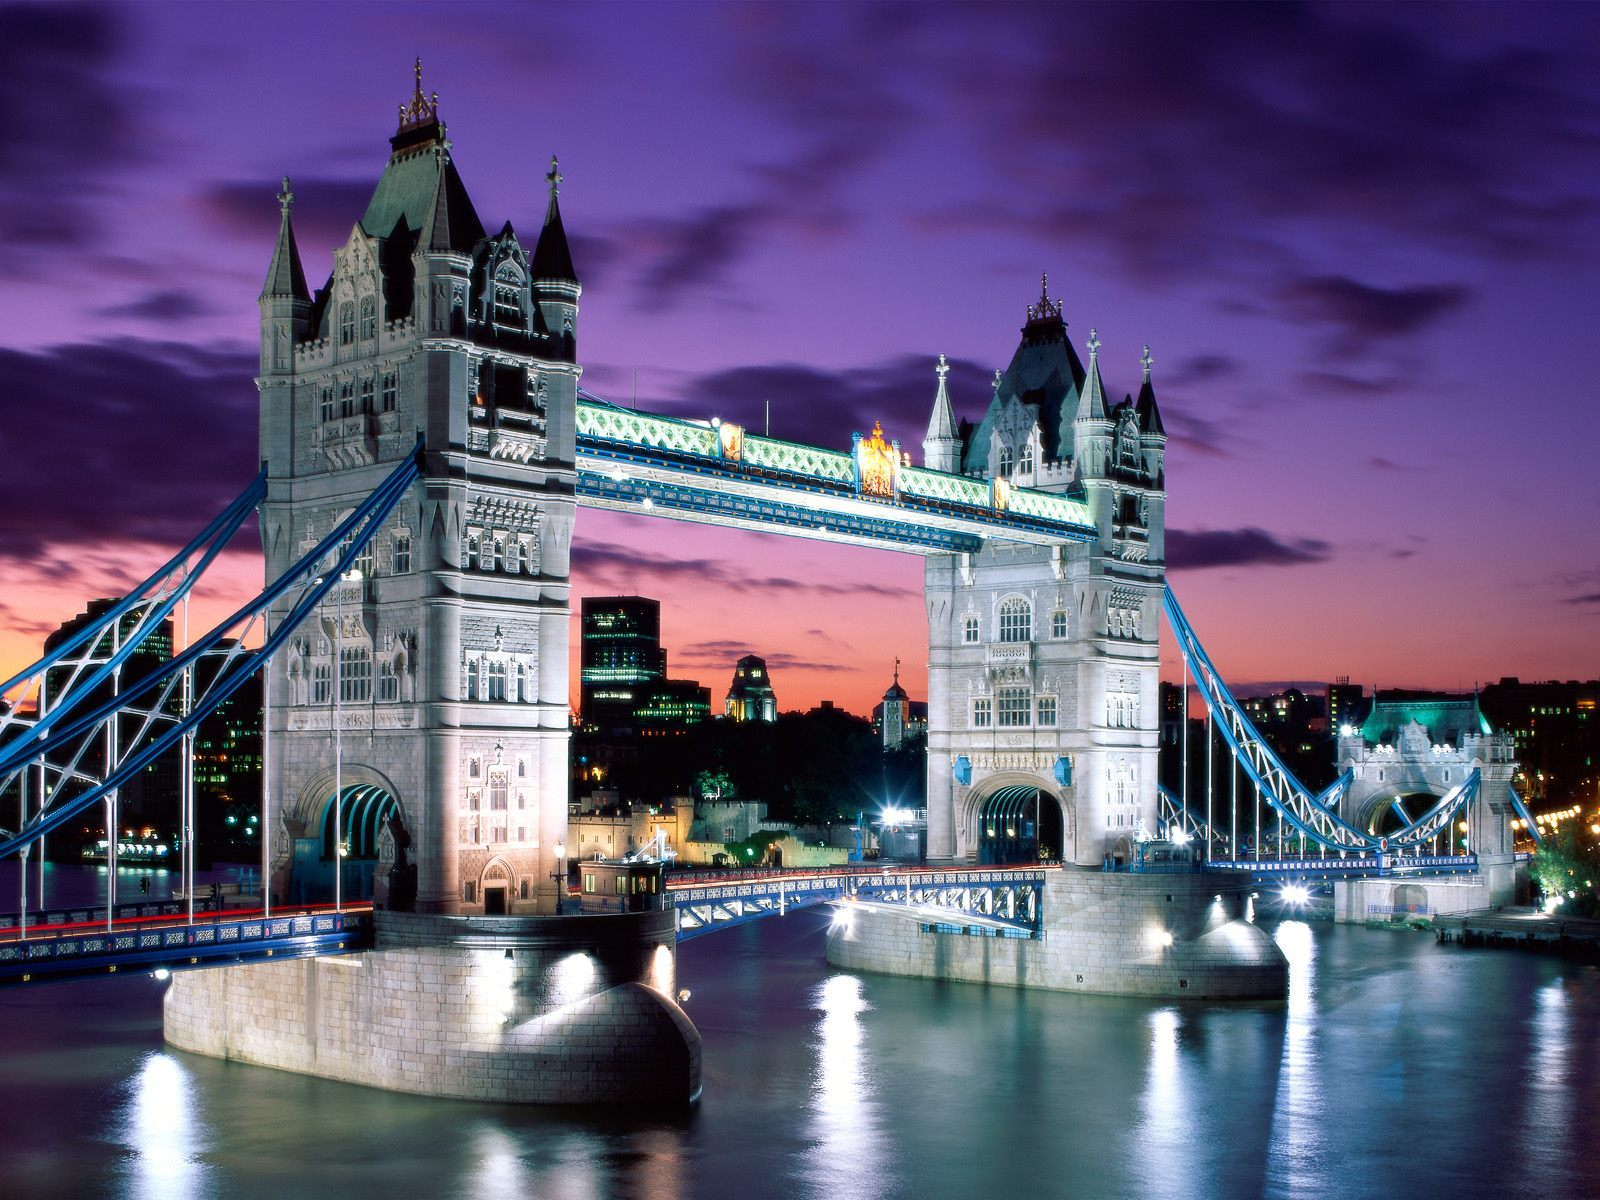 London Architecture, United Kingdom, Tower Bridge at night